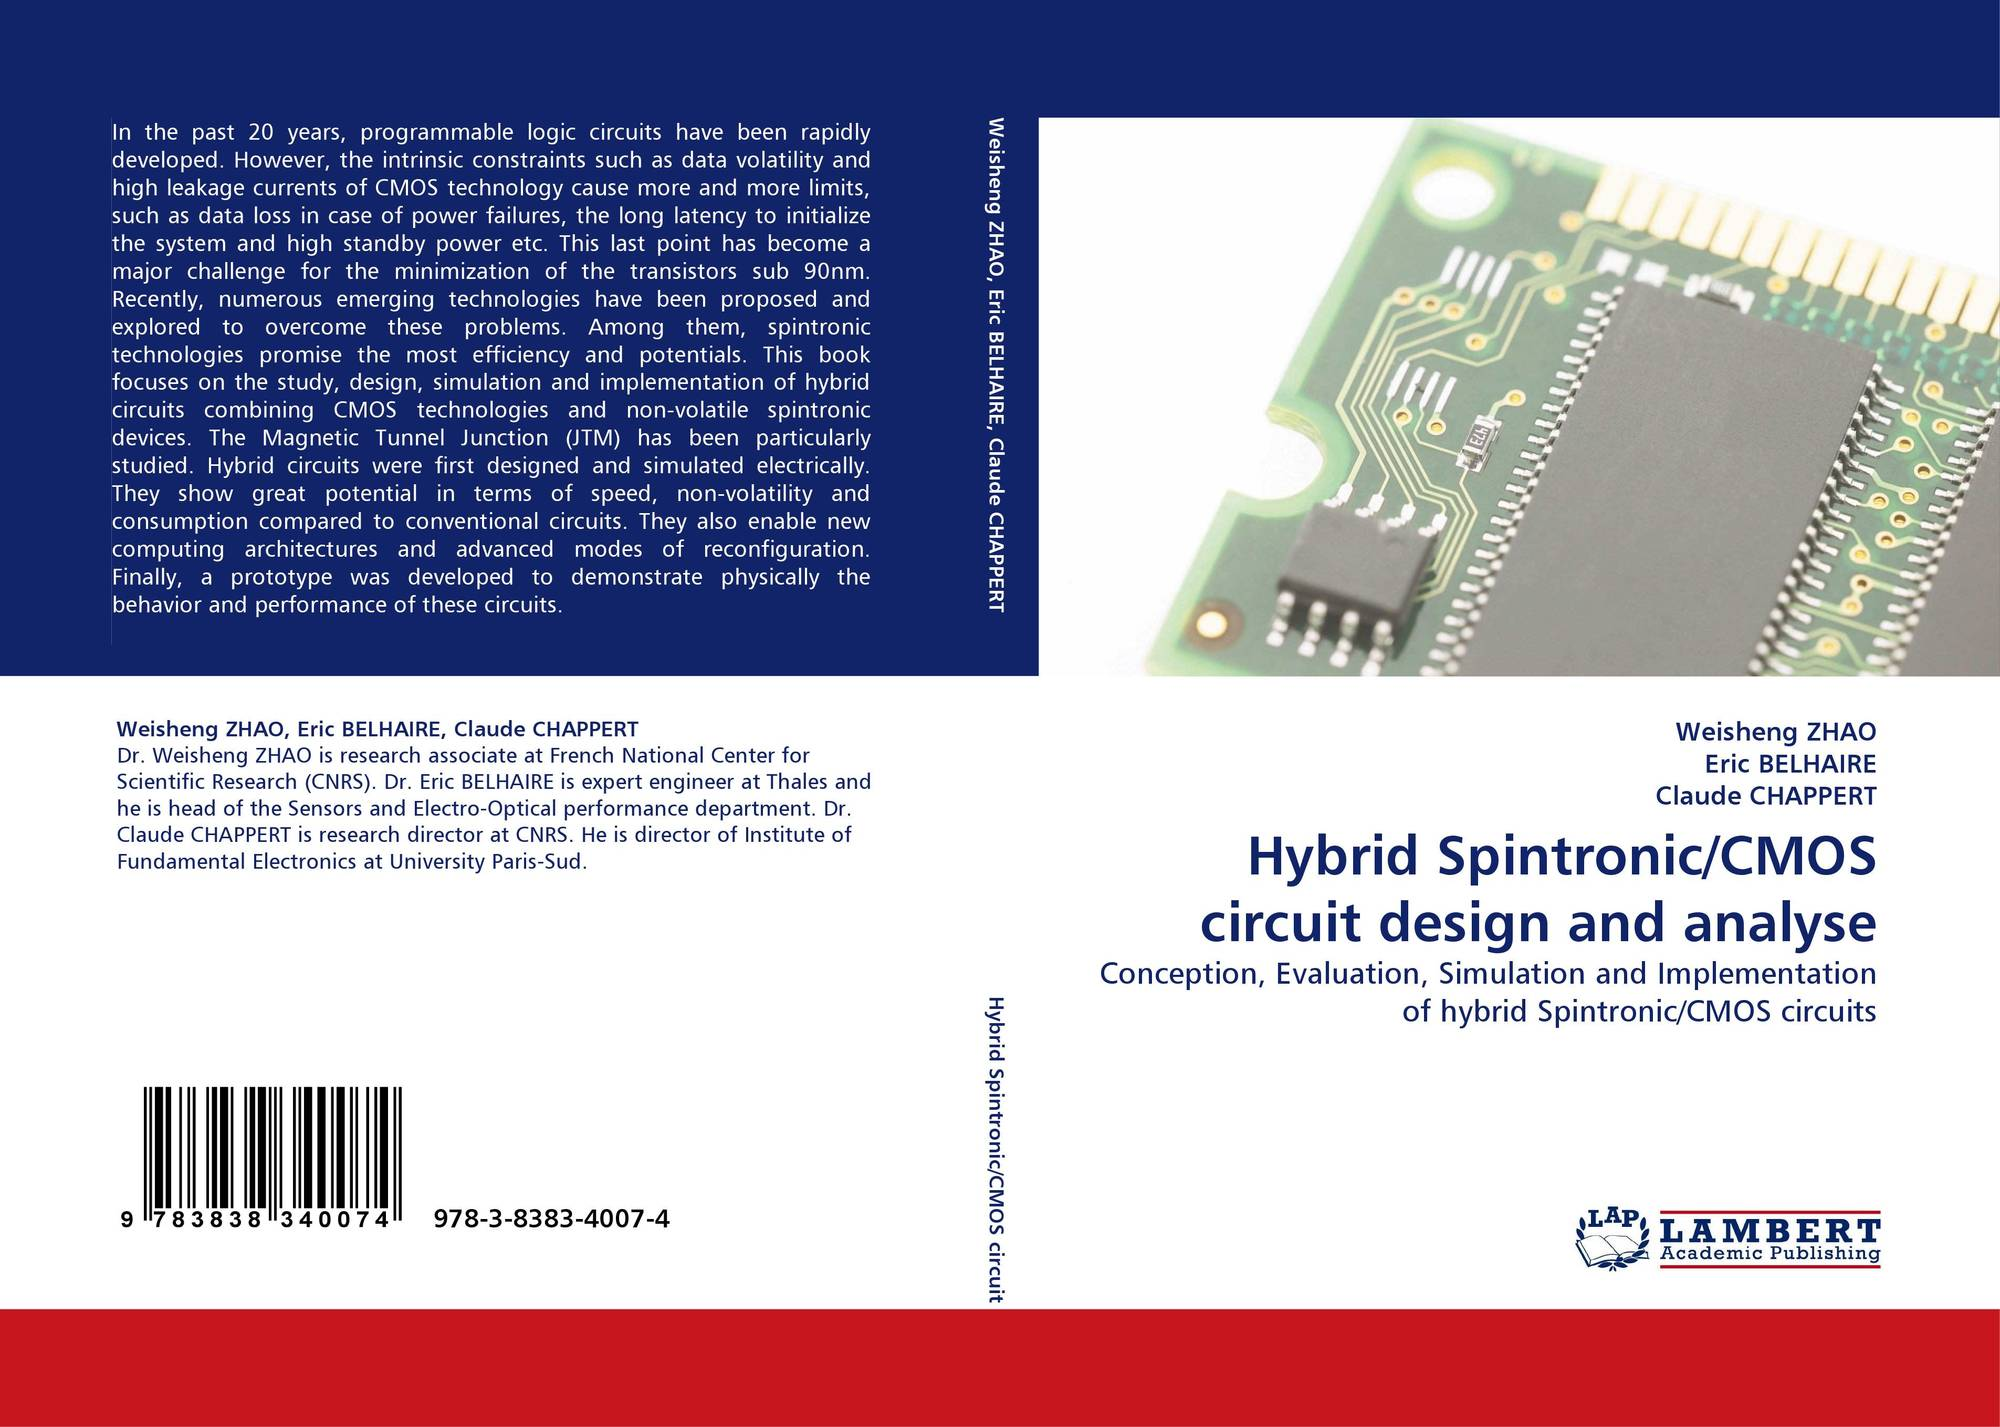 Hybrid Spintronic Cmos Circuit Design And Analyse 978 3 8383 4007 4 Electronic Job Description 9783838340074